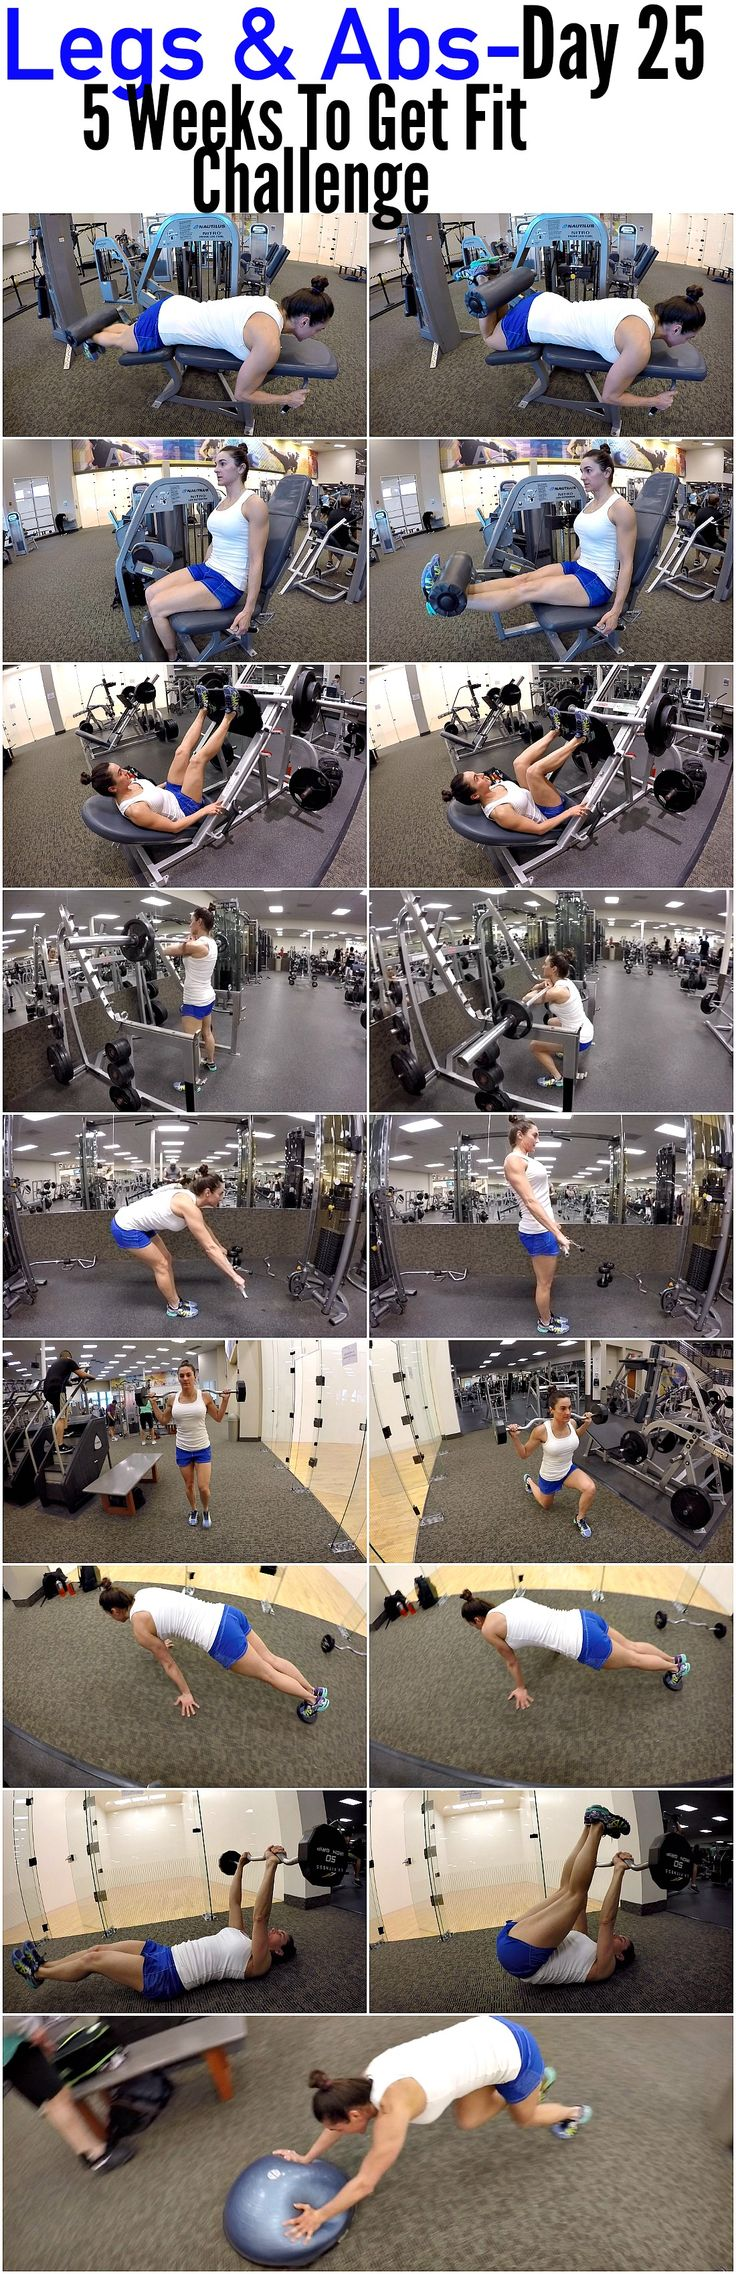 5 Weeks To Fit Get Challenge Day 25-LEGS & ABS